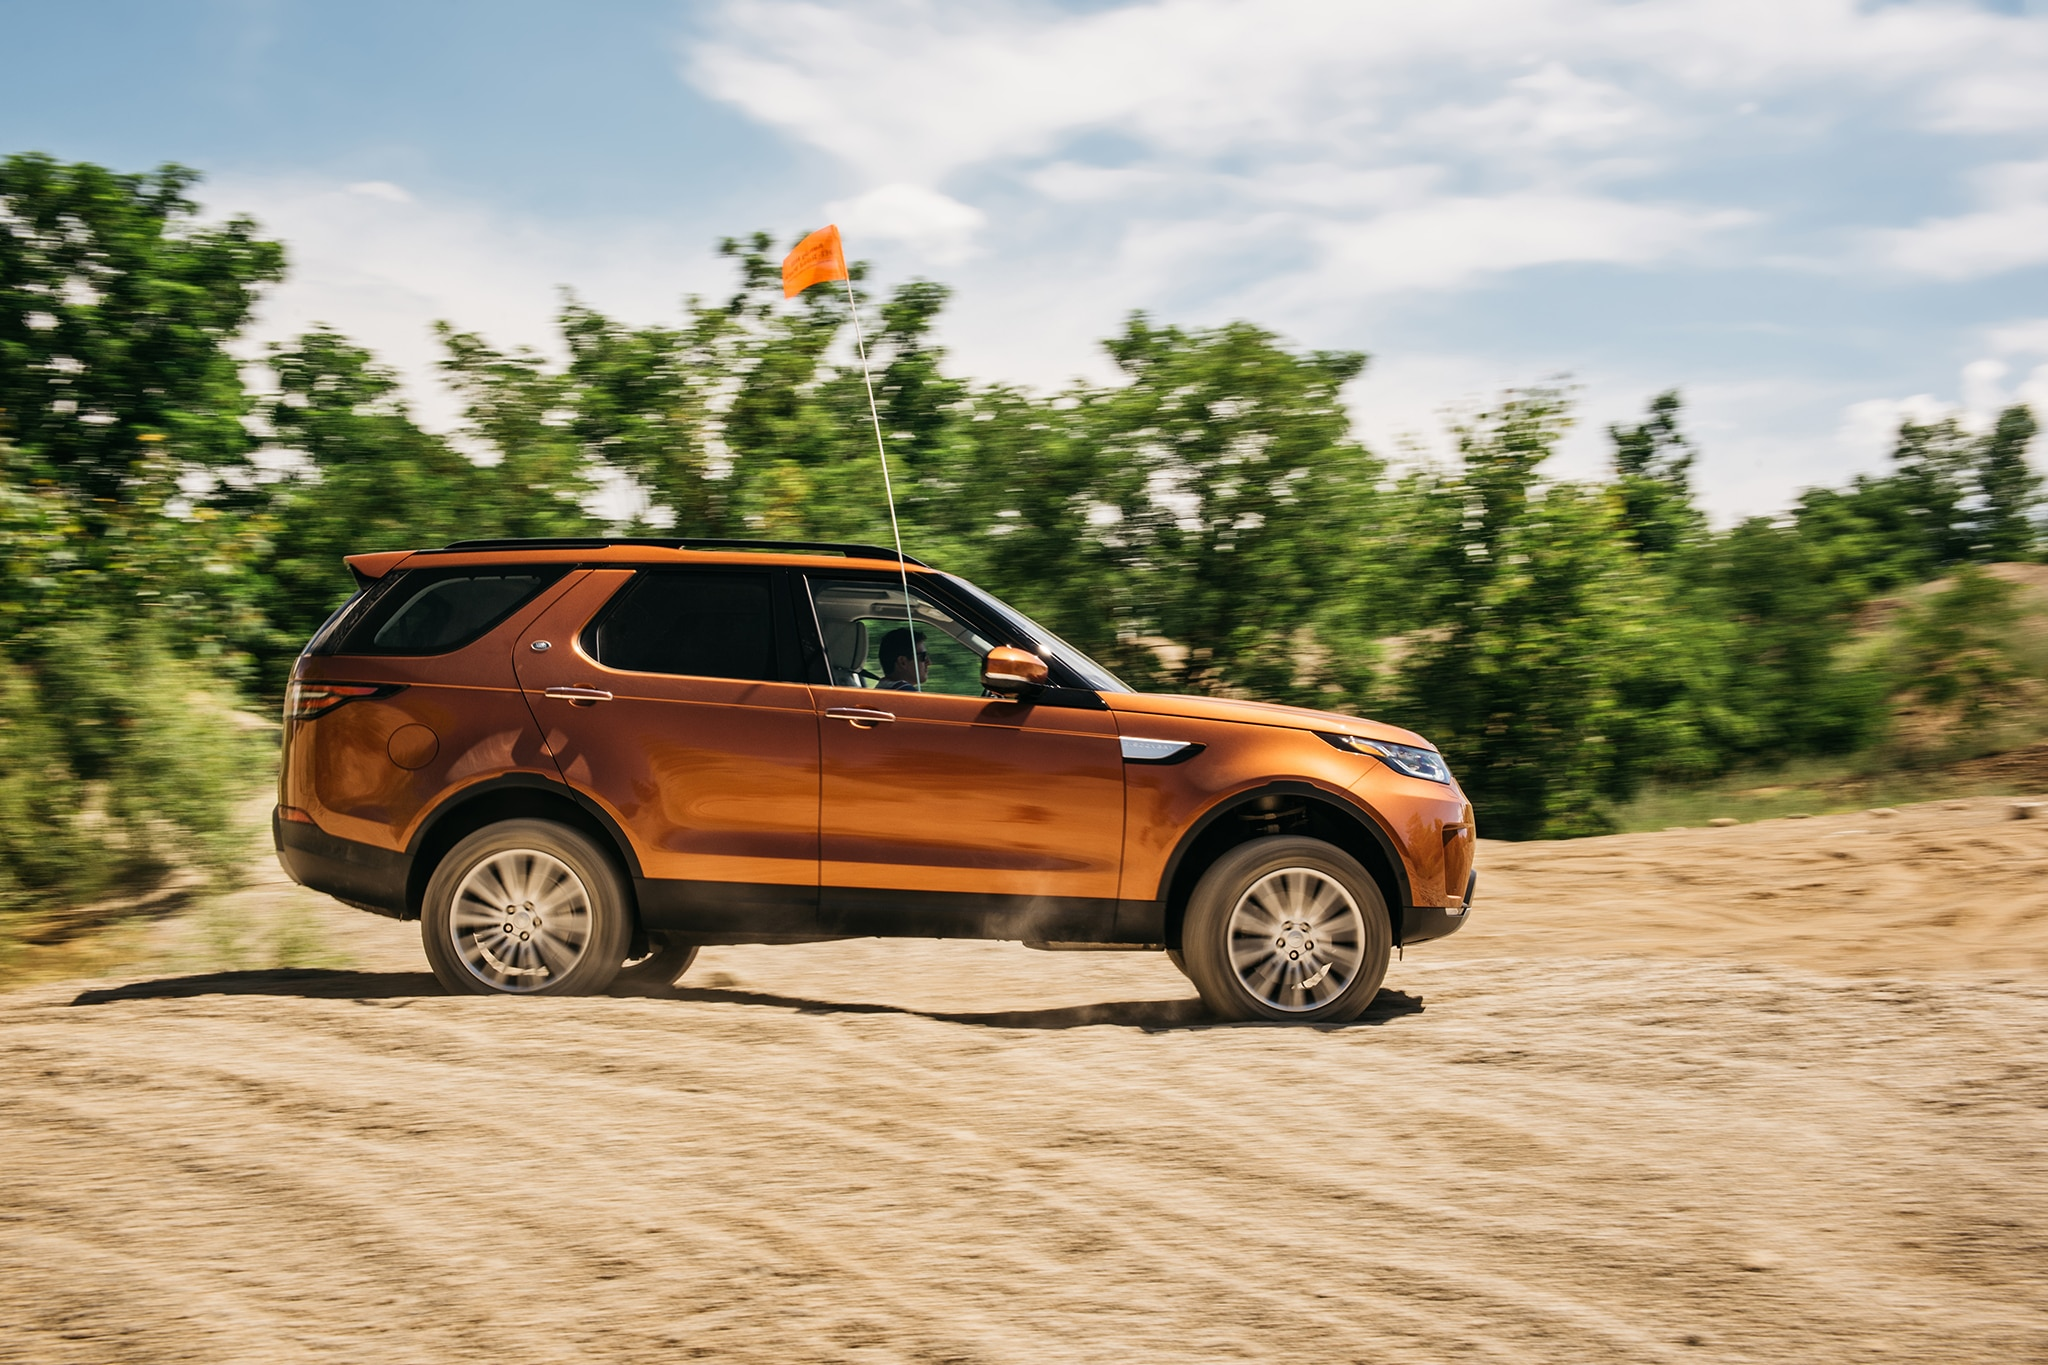 2017 Land Rover Discovery Td6 HSE Side Profile In Motion 05